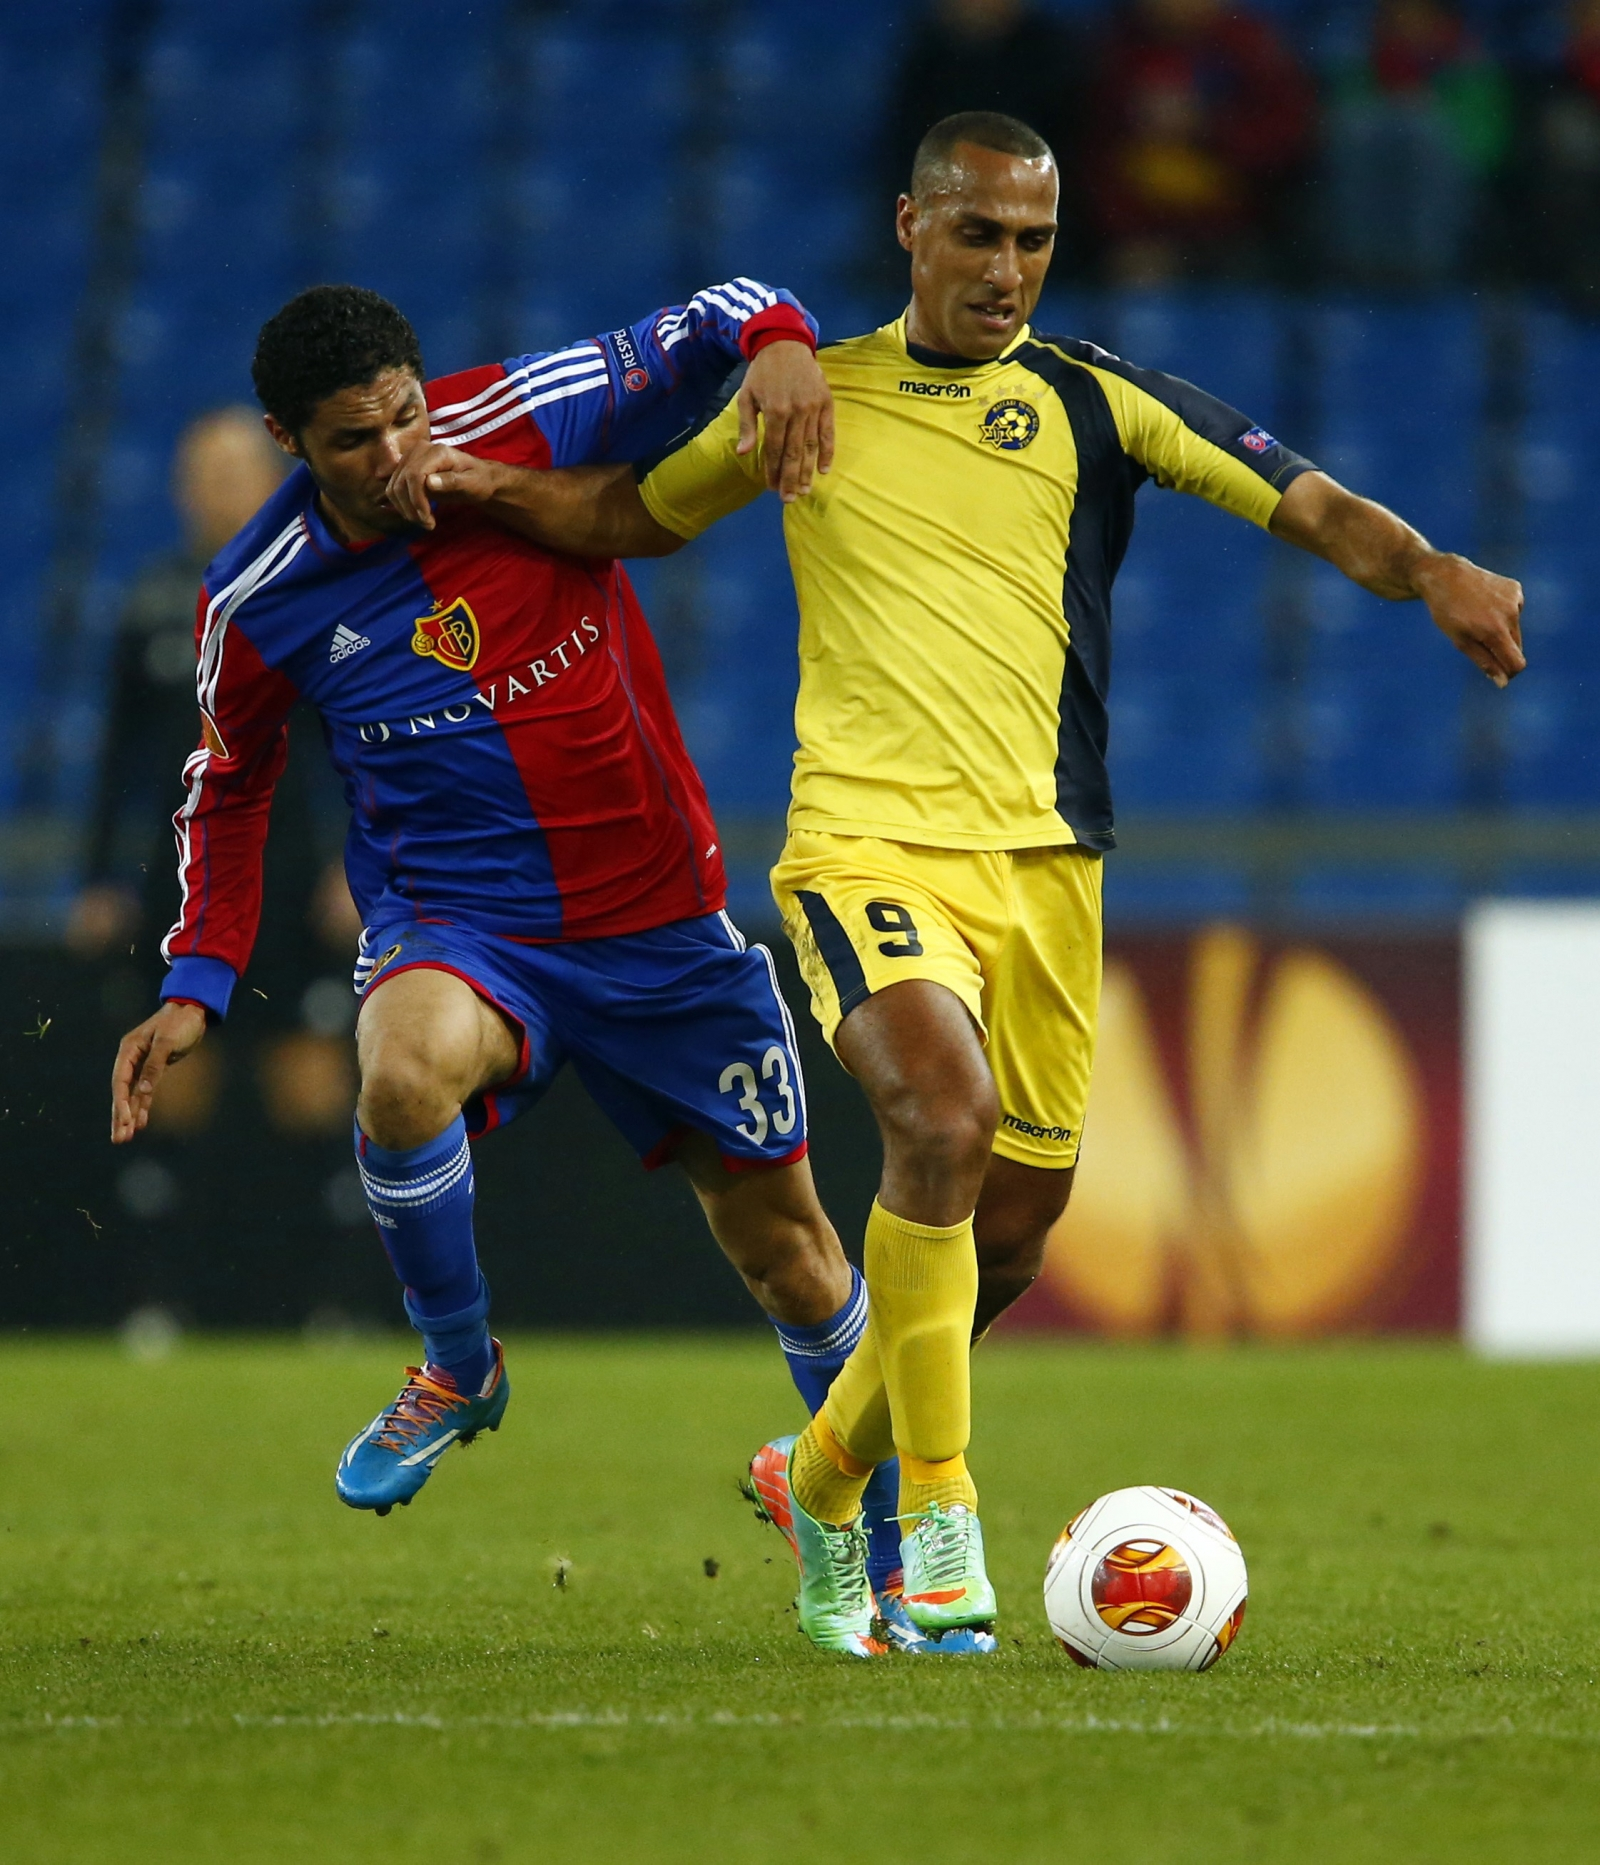 FC Basel's Mohamed Elneny (L) fights for the ball with Maccabi Tel Aviv's Maharan Radi